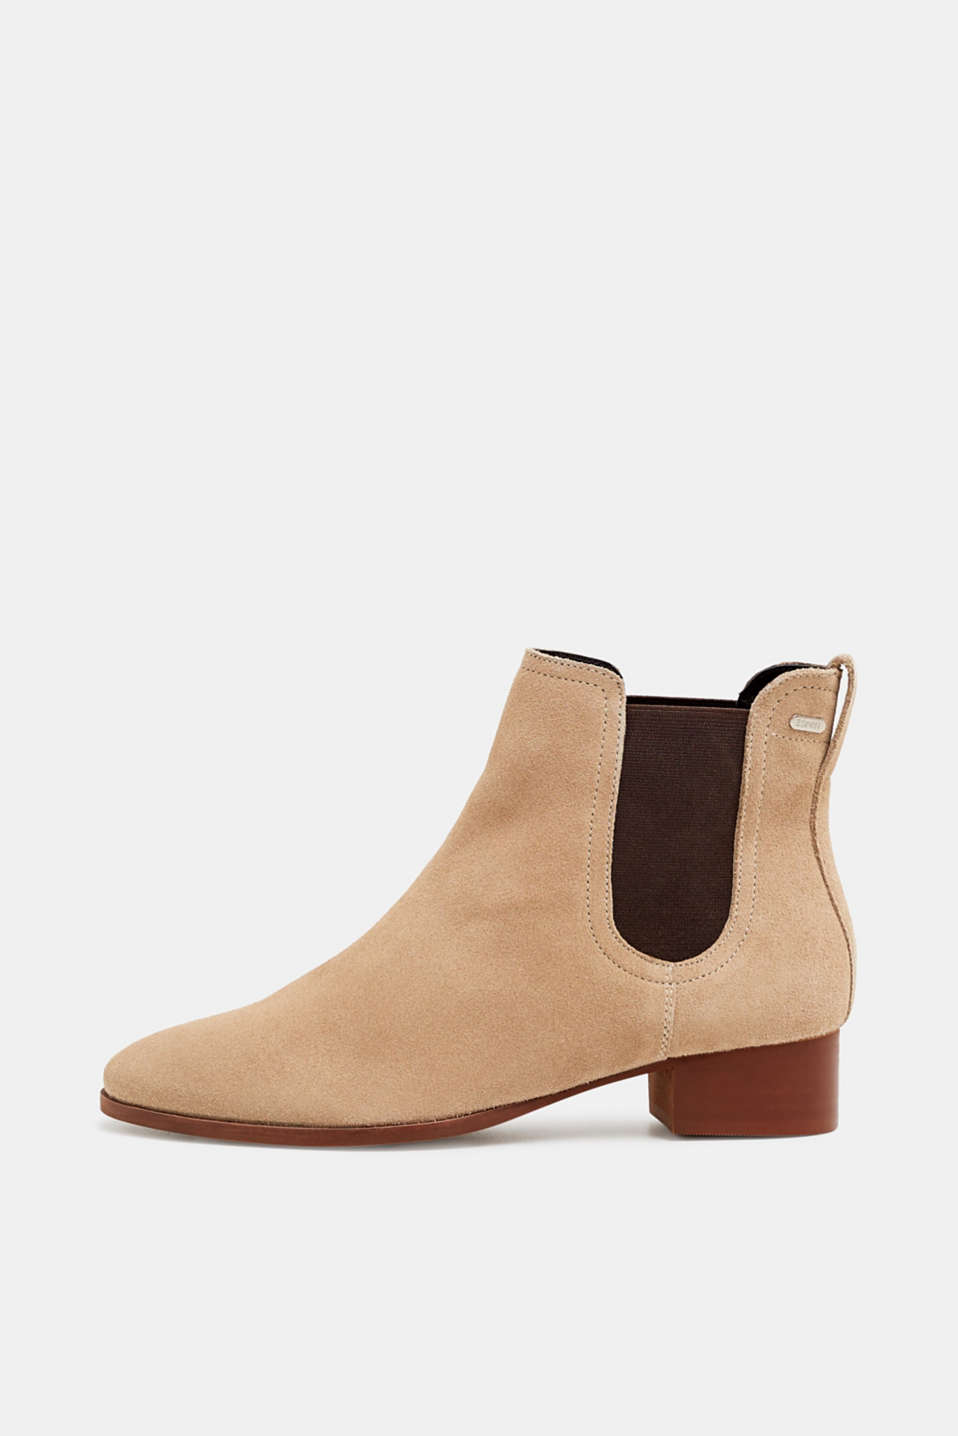 Esprit - Suede ankle boots with elasticated inserts